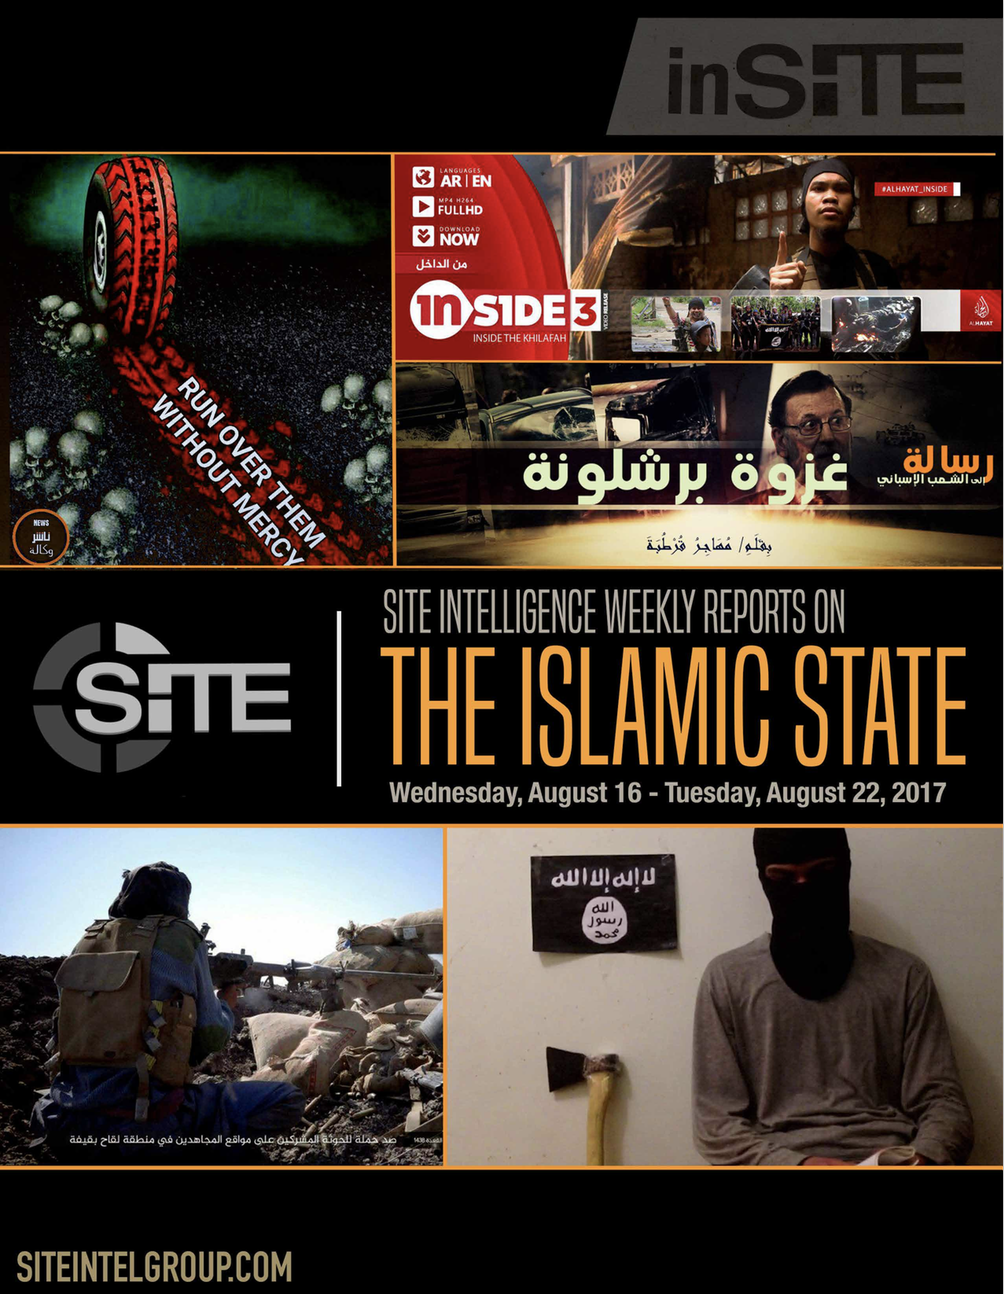 Weekly inSITE on the Islamic State, August 16-22